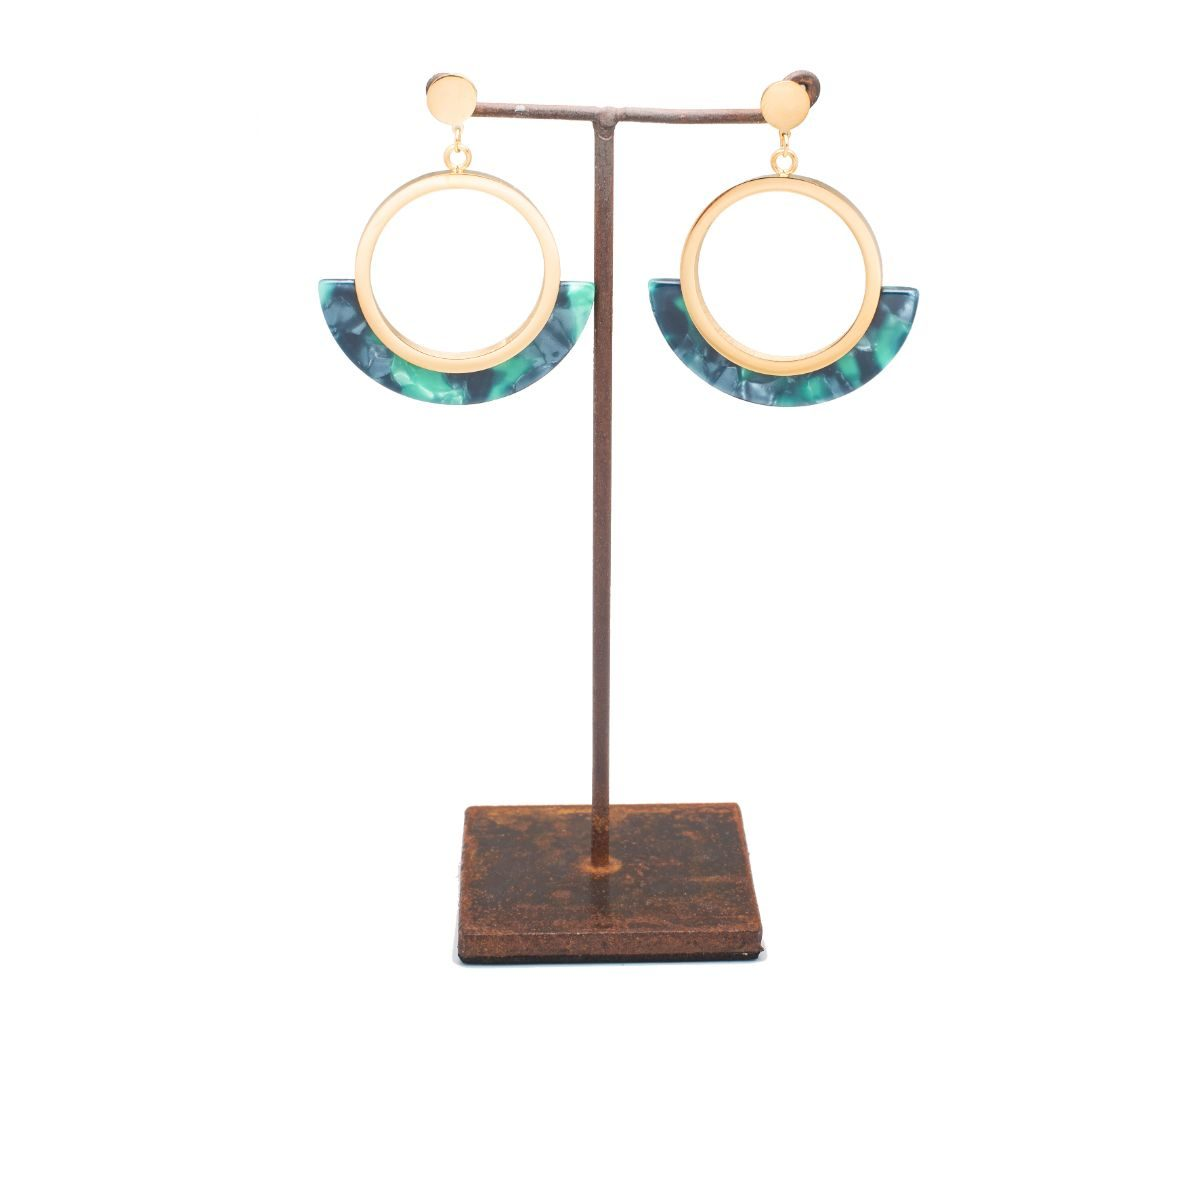 Anemone Gold-plated metal circle-shaped earring with green-tone resin piece in the lower half of the circle